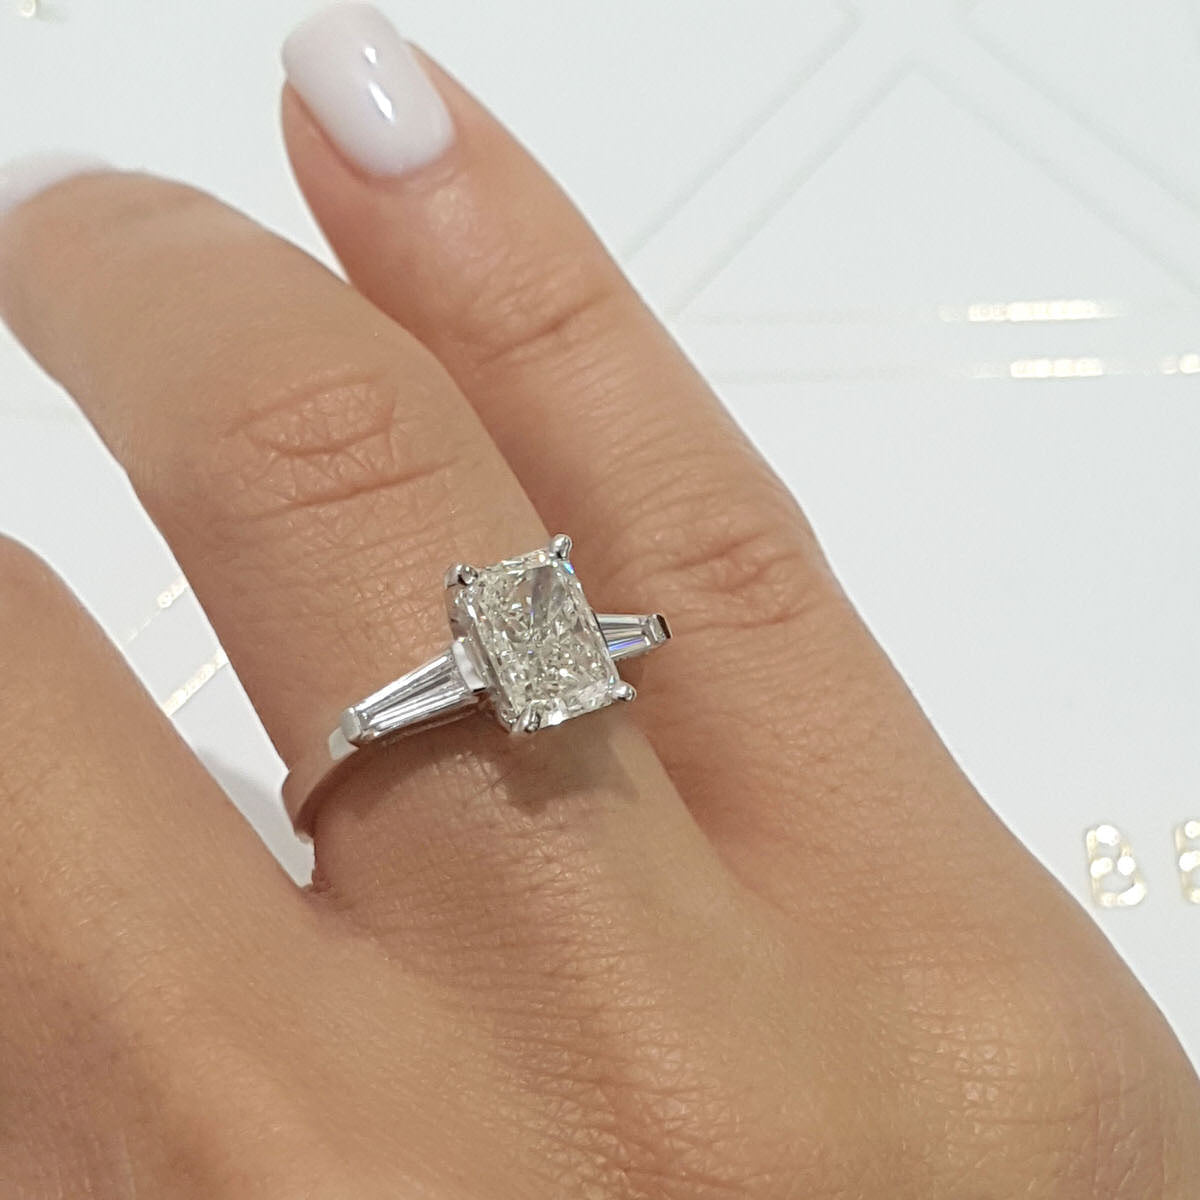 The Skylar Engagement Ring - 1.8 CARAT G VS2 RADIANT SHAPED DIAMOND - 3 STONES RING #J99943